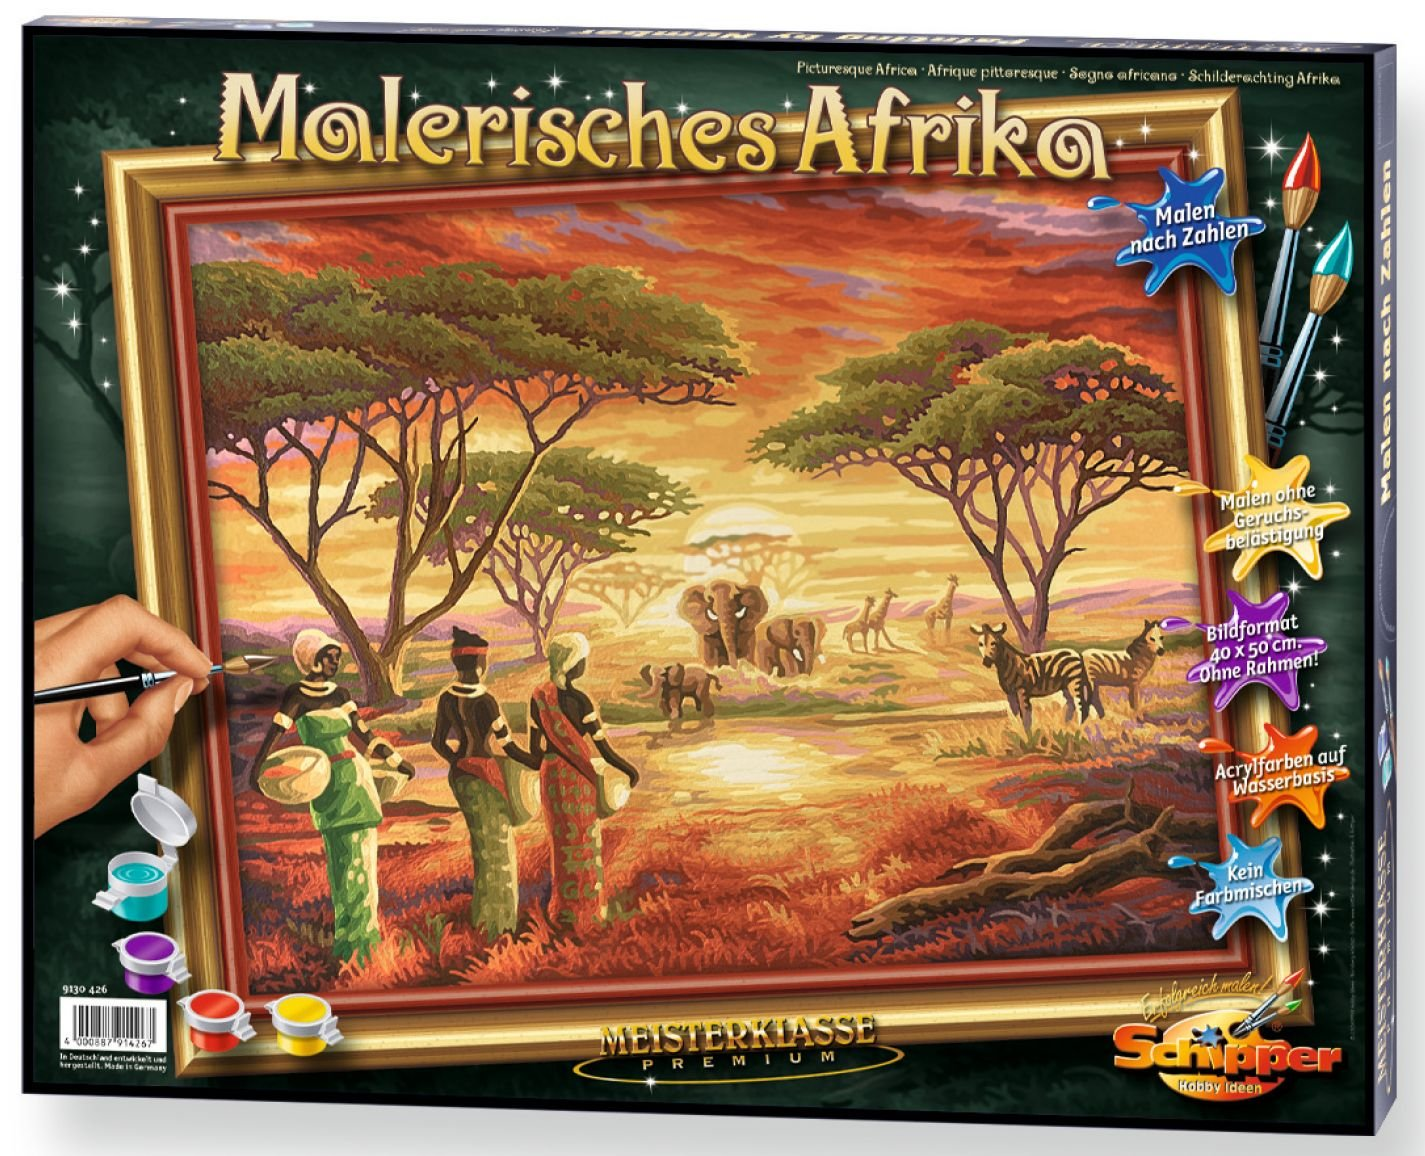 Picturesque Africa Artist-Styled Paint-by-Number Kit